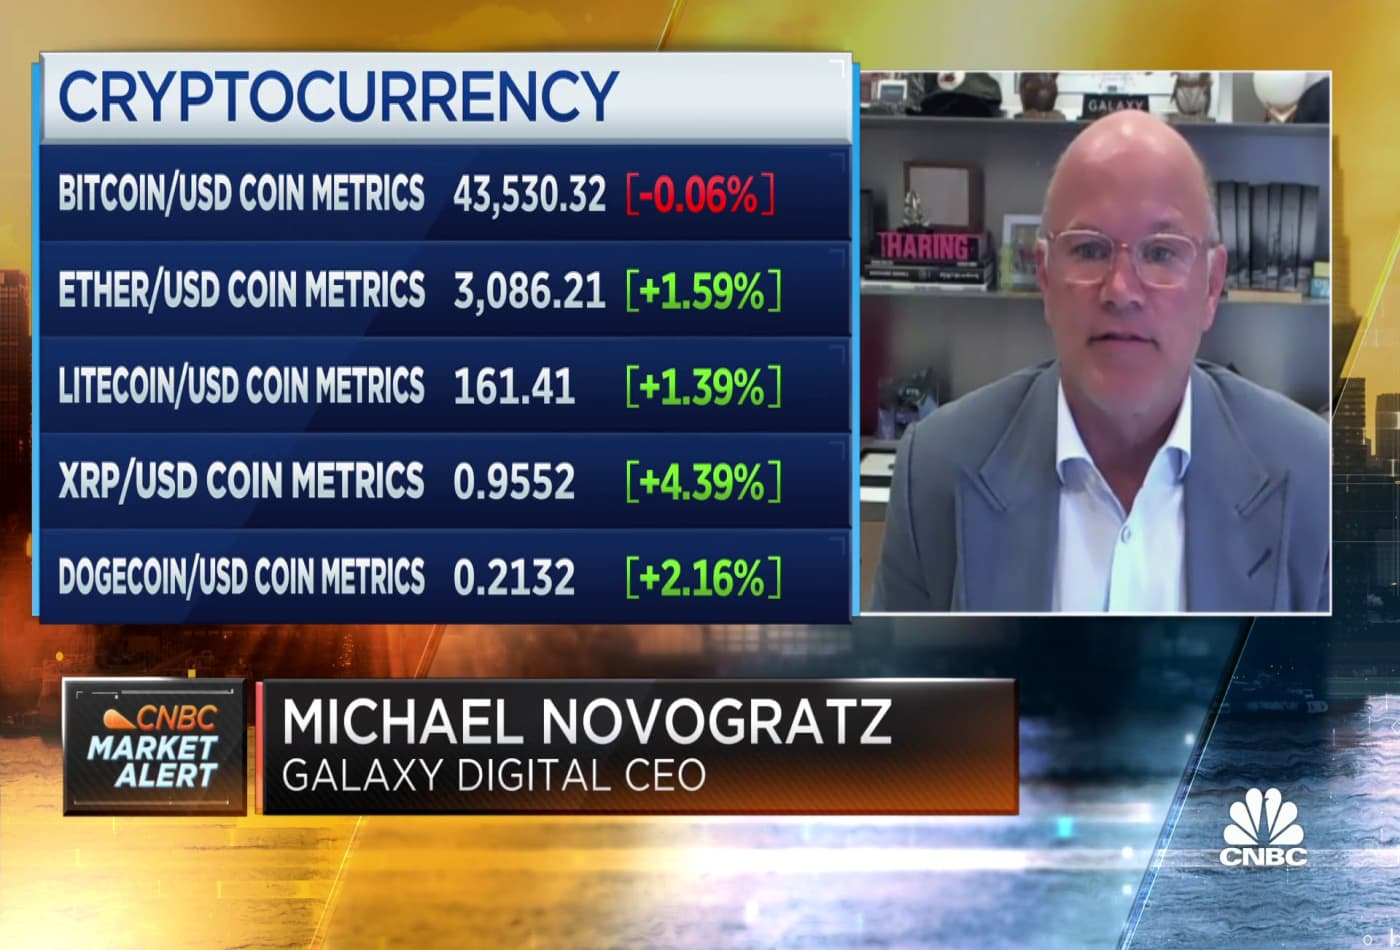 Galaxy Digital CEO: Not nervous about crypto sell-off, buy the dip